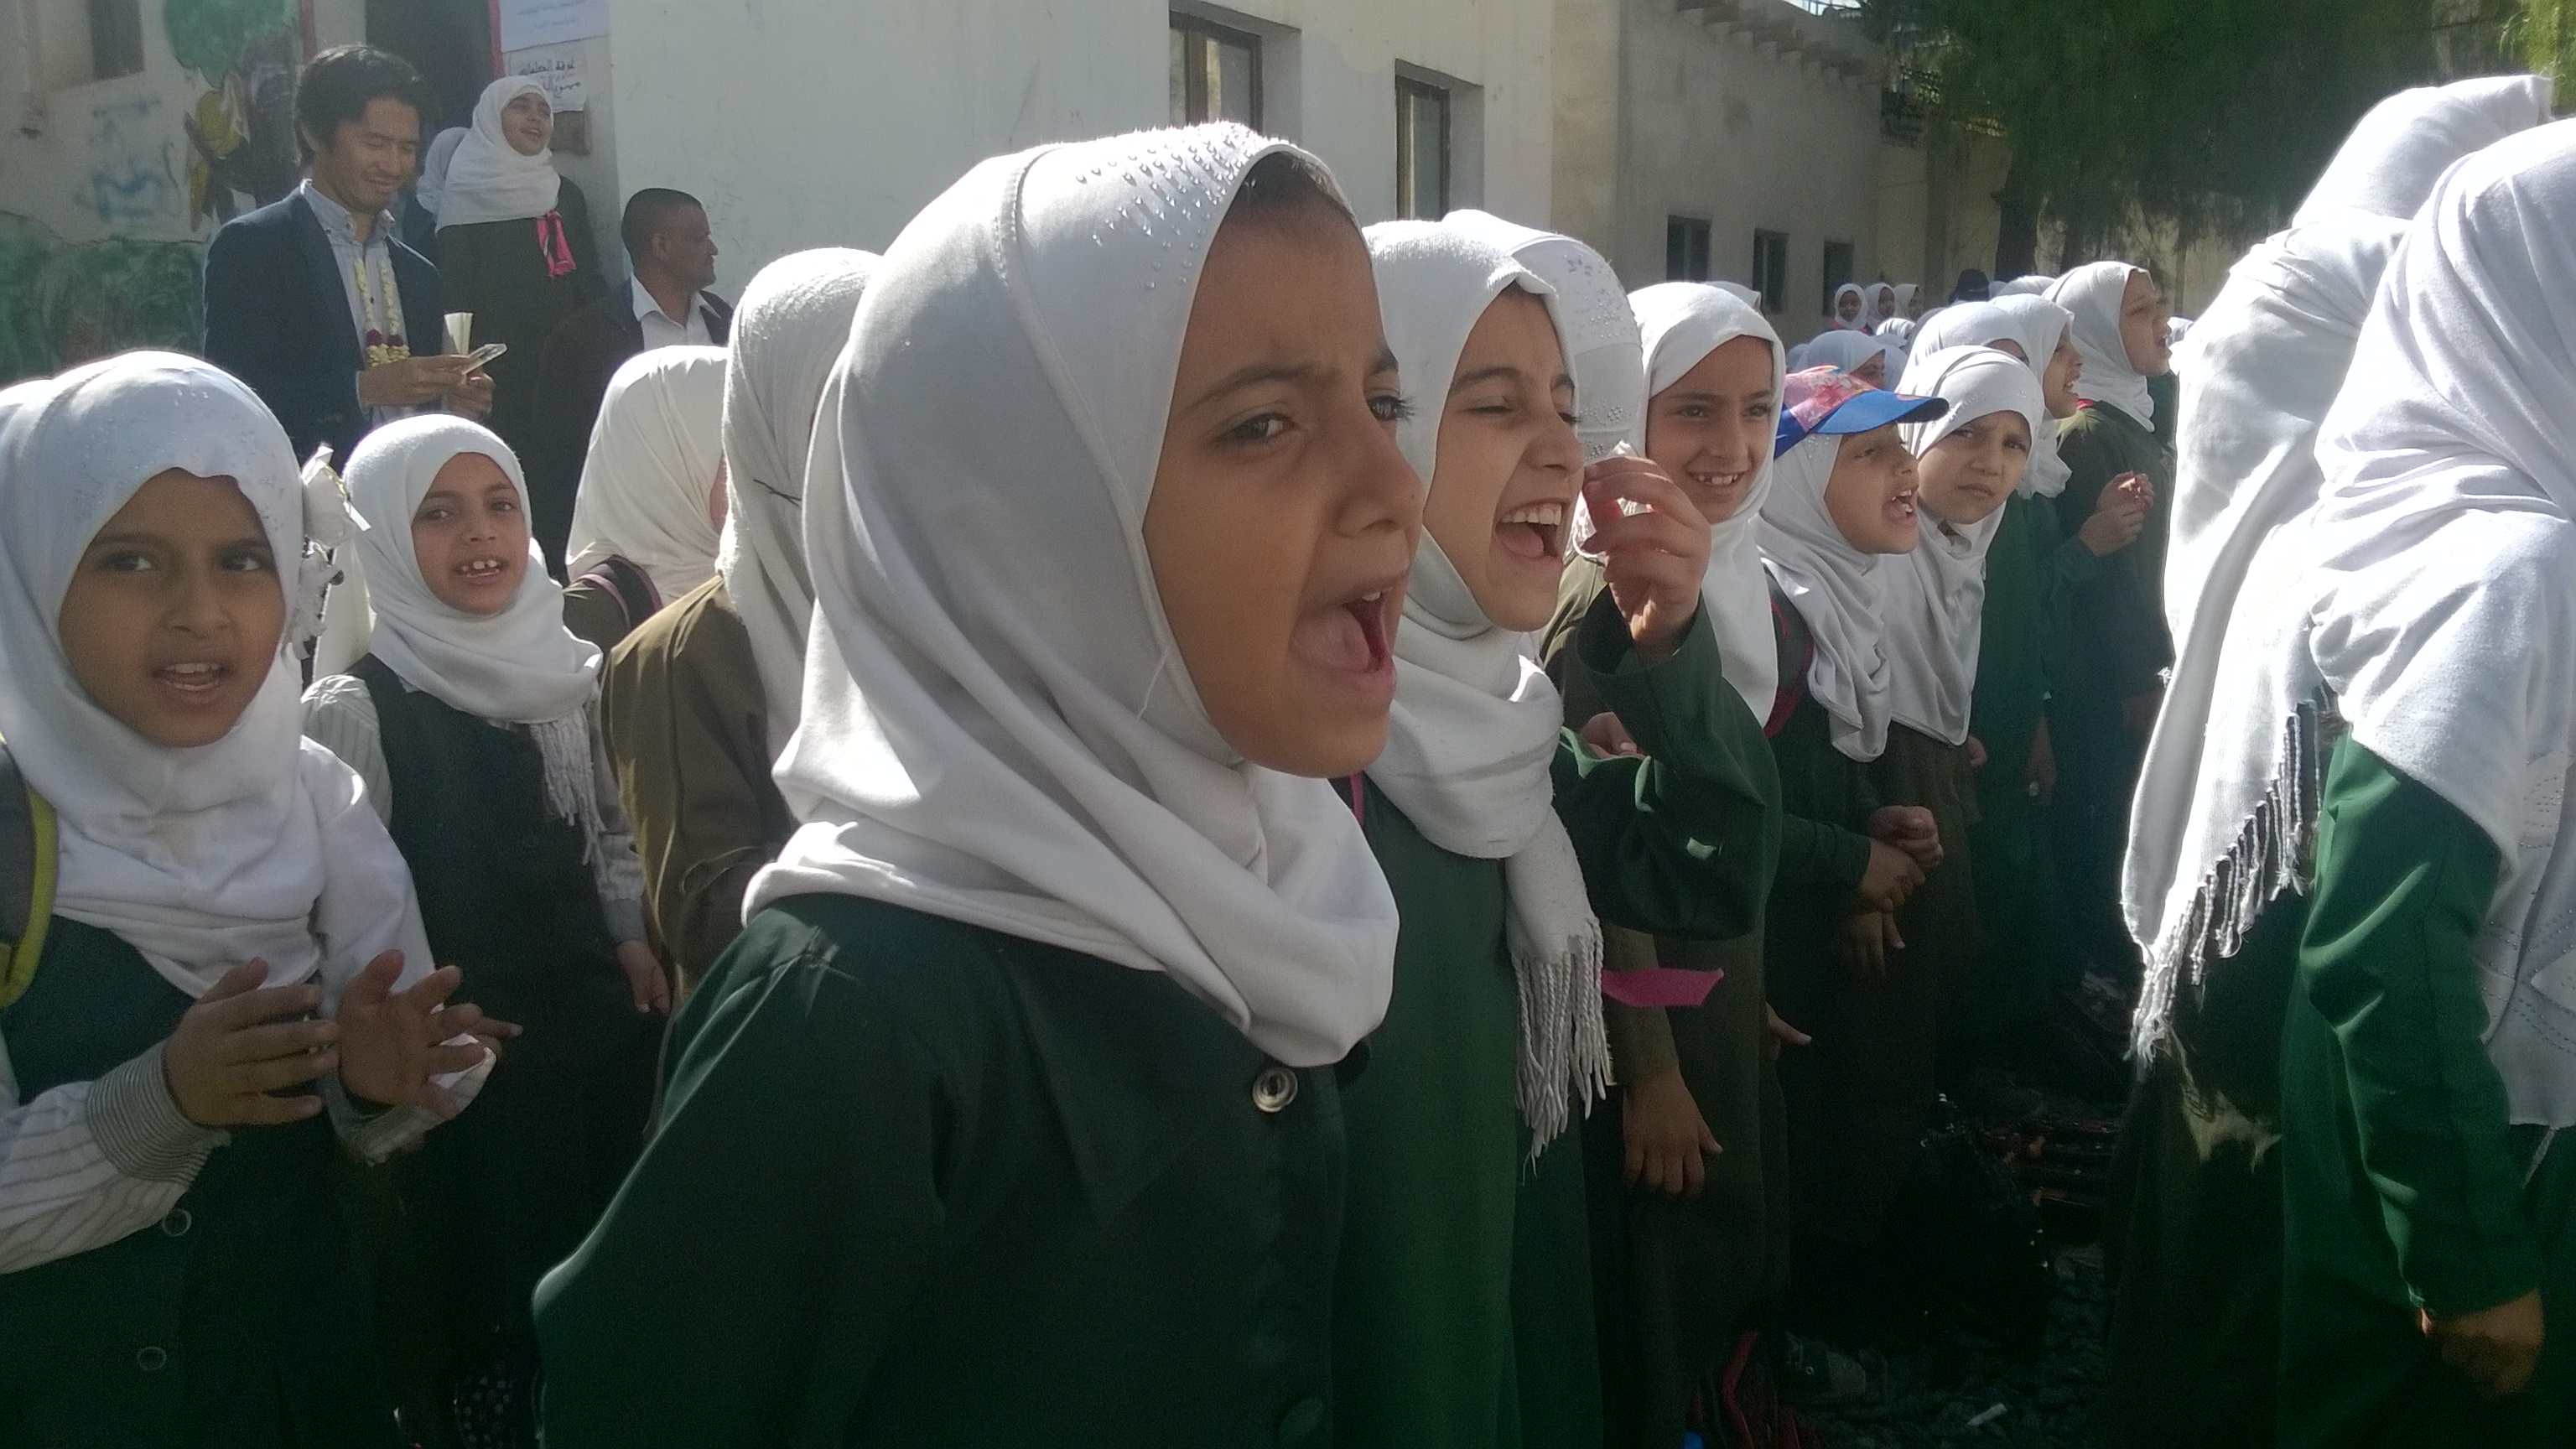 A group of girls singing.